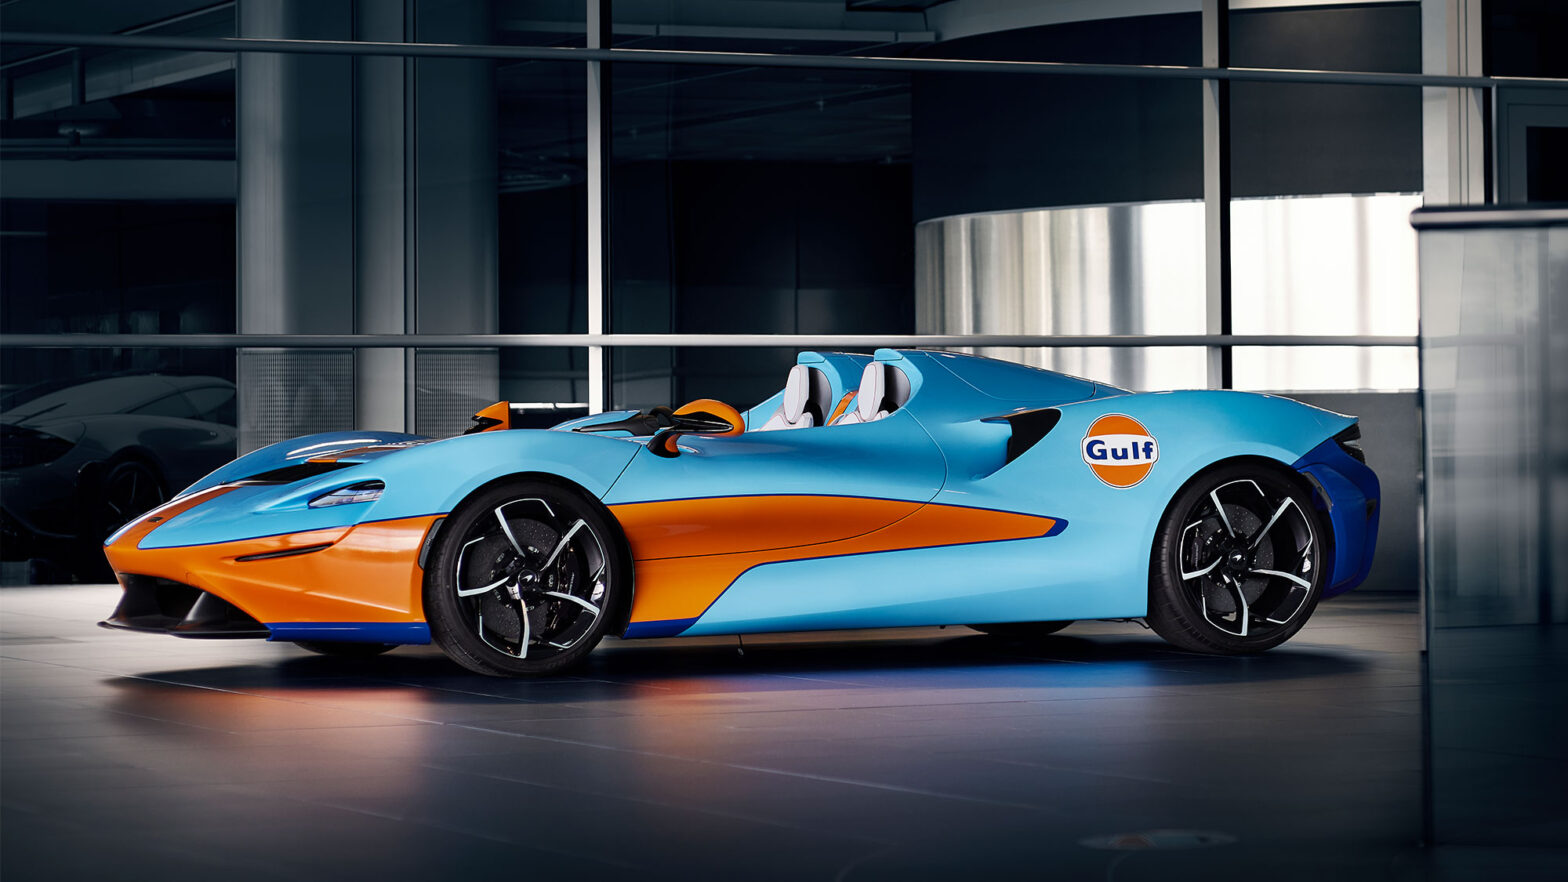 McLaren Elva Supercar in Gulf Oil Colors